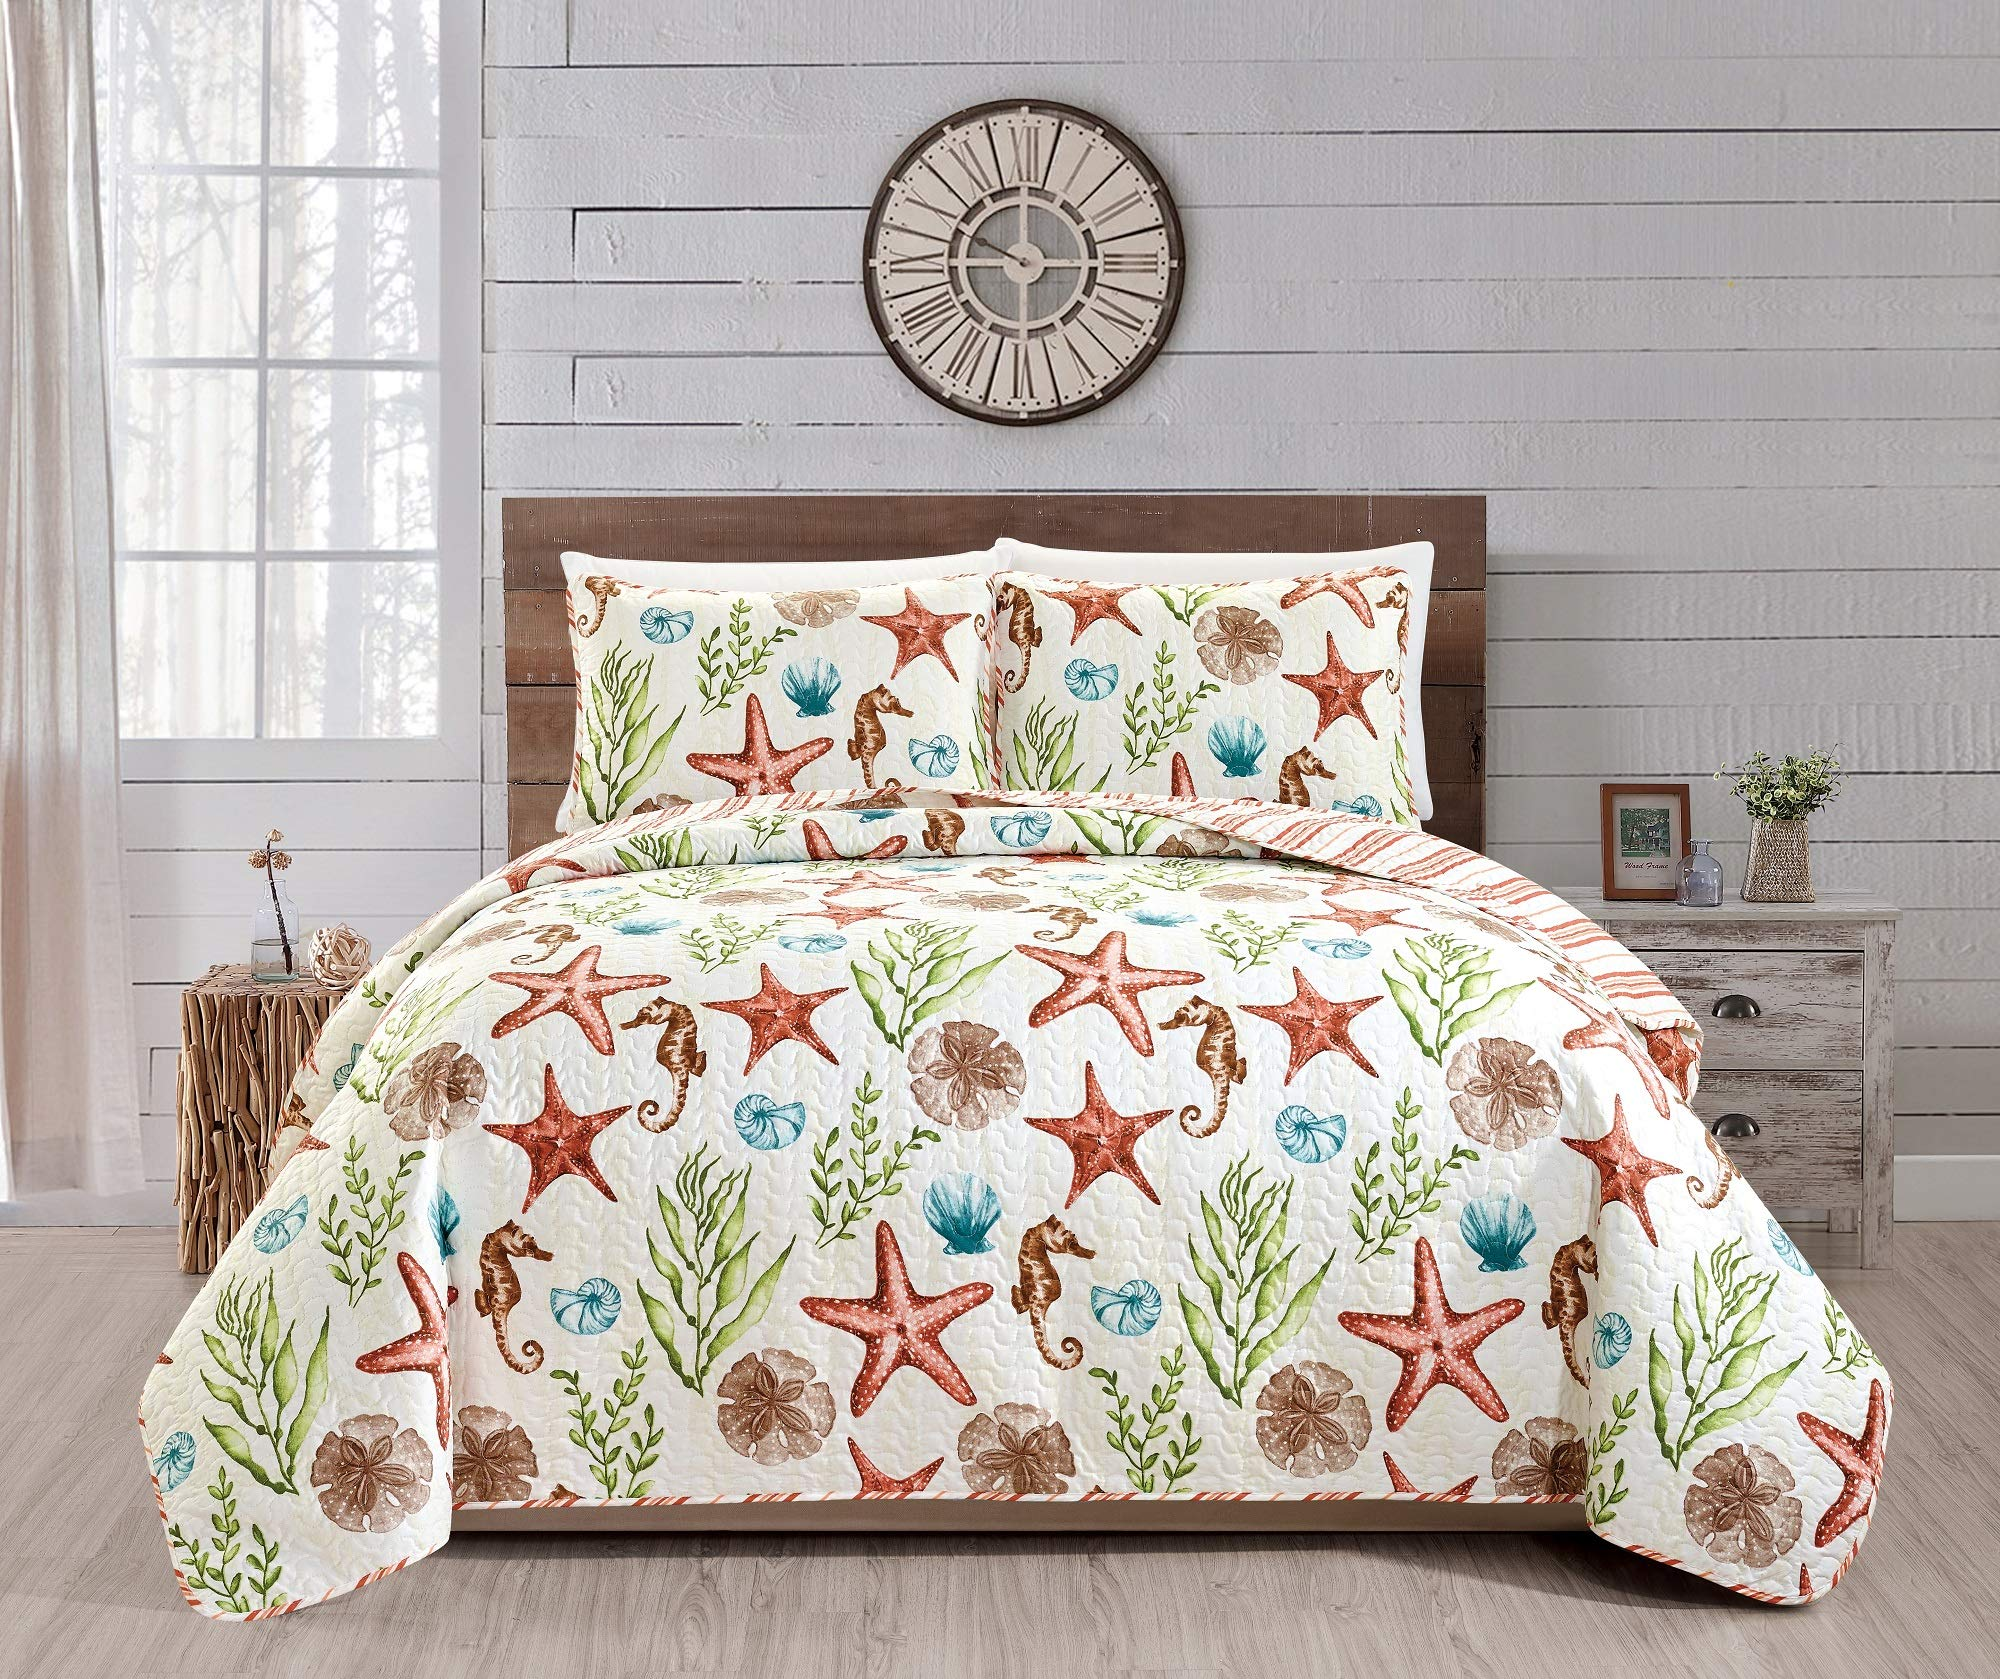 Great Bay Home Castaway Coastal Collection 3 Piece Quilt Set with Shams. Reversible Beach Theme Bedspread Coverlet. Machine Washable. (Full/Queen, Multi) by Great Bay Home (Image #3)